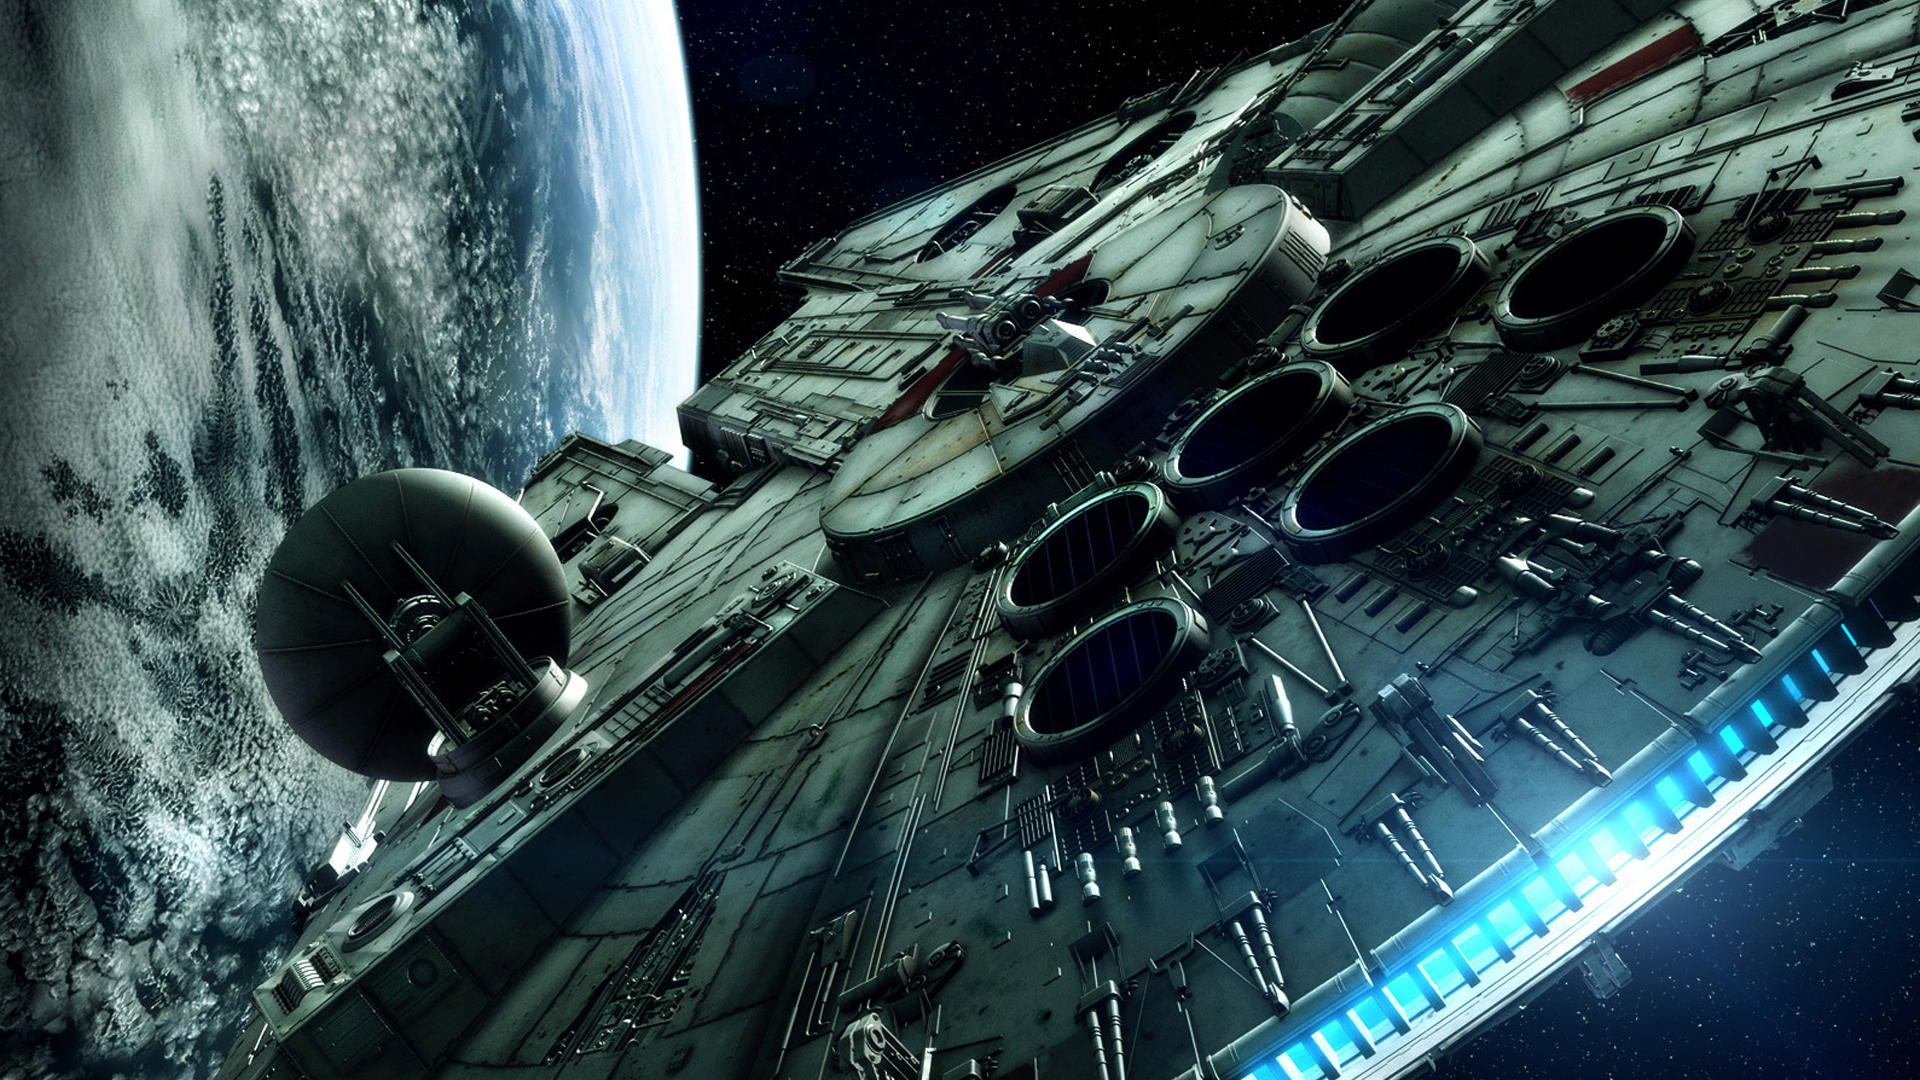 1920x1080 star wars hd wallpaper wallpapers hd Car Pictures 1920x1080